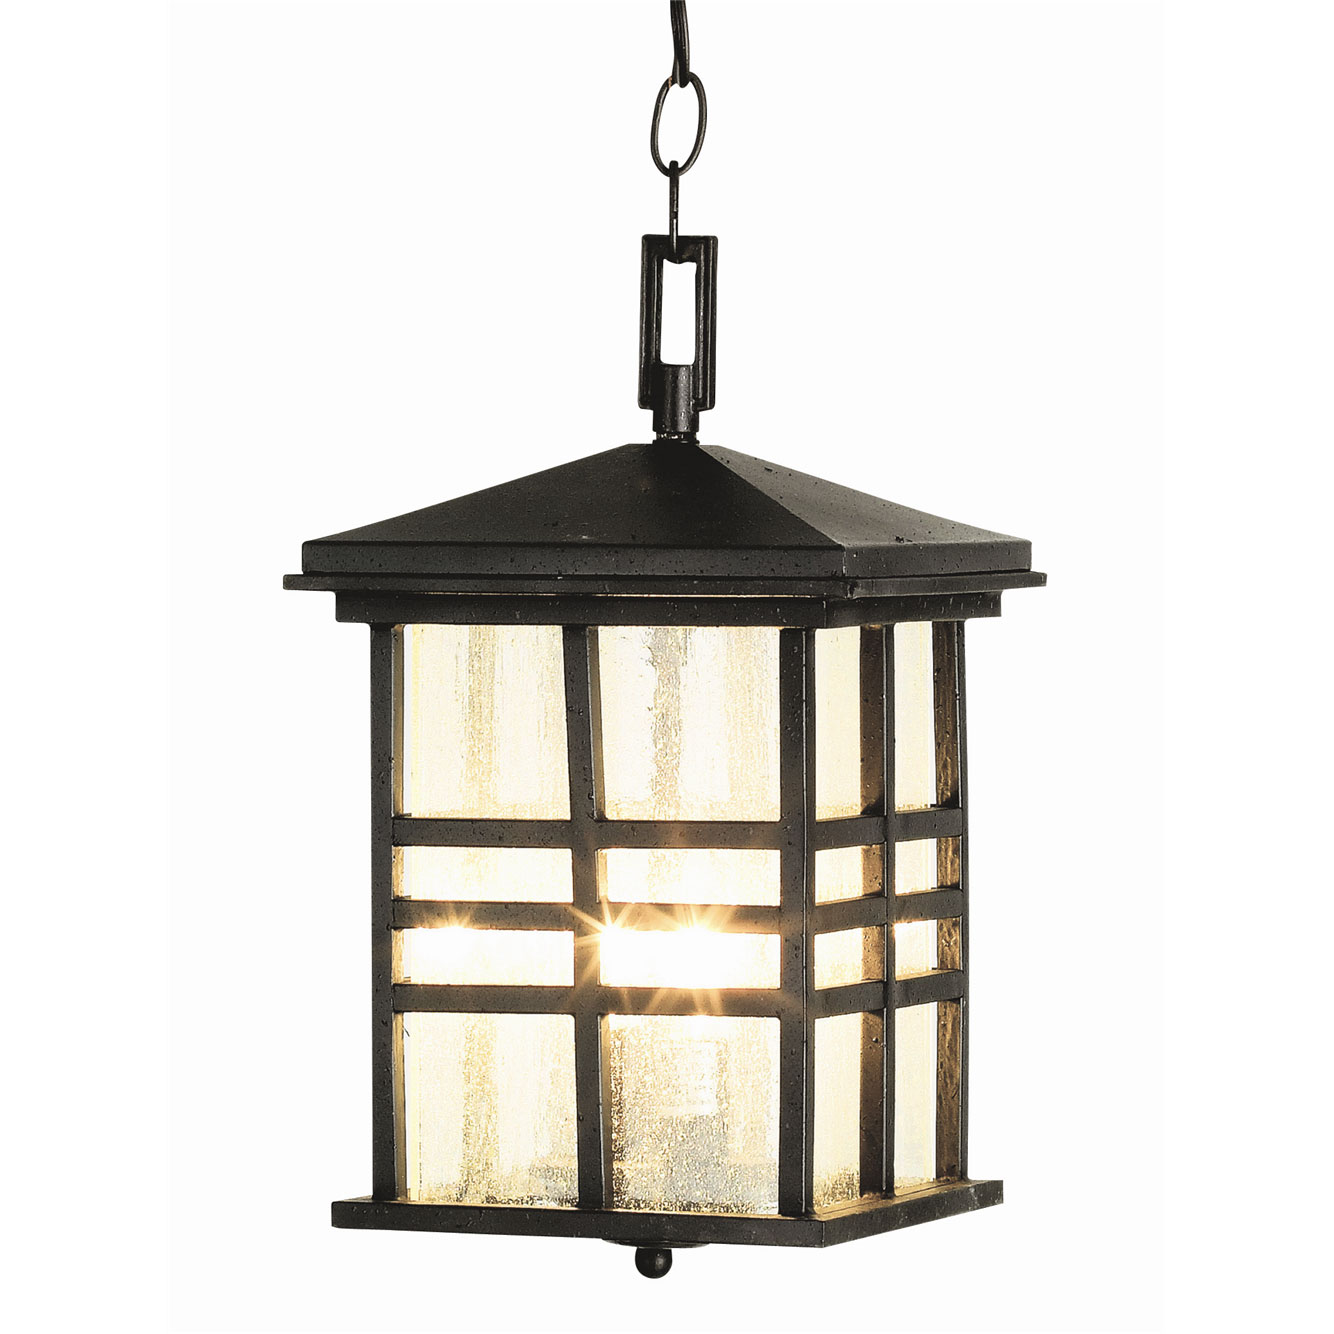 Rustic craftsman outdoor hanging lantern by trans globe 4638 bk mozeypictures Images